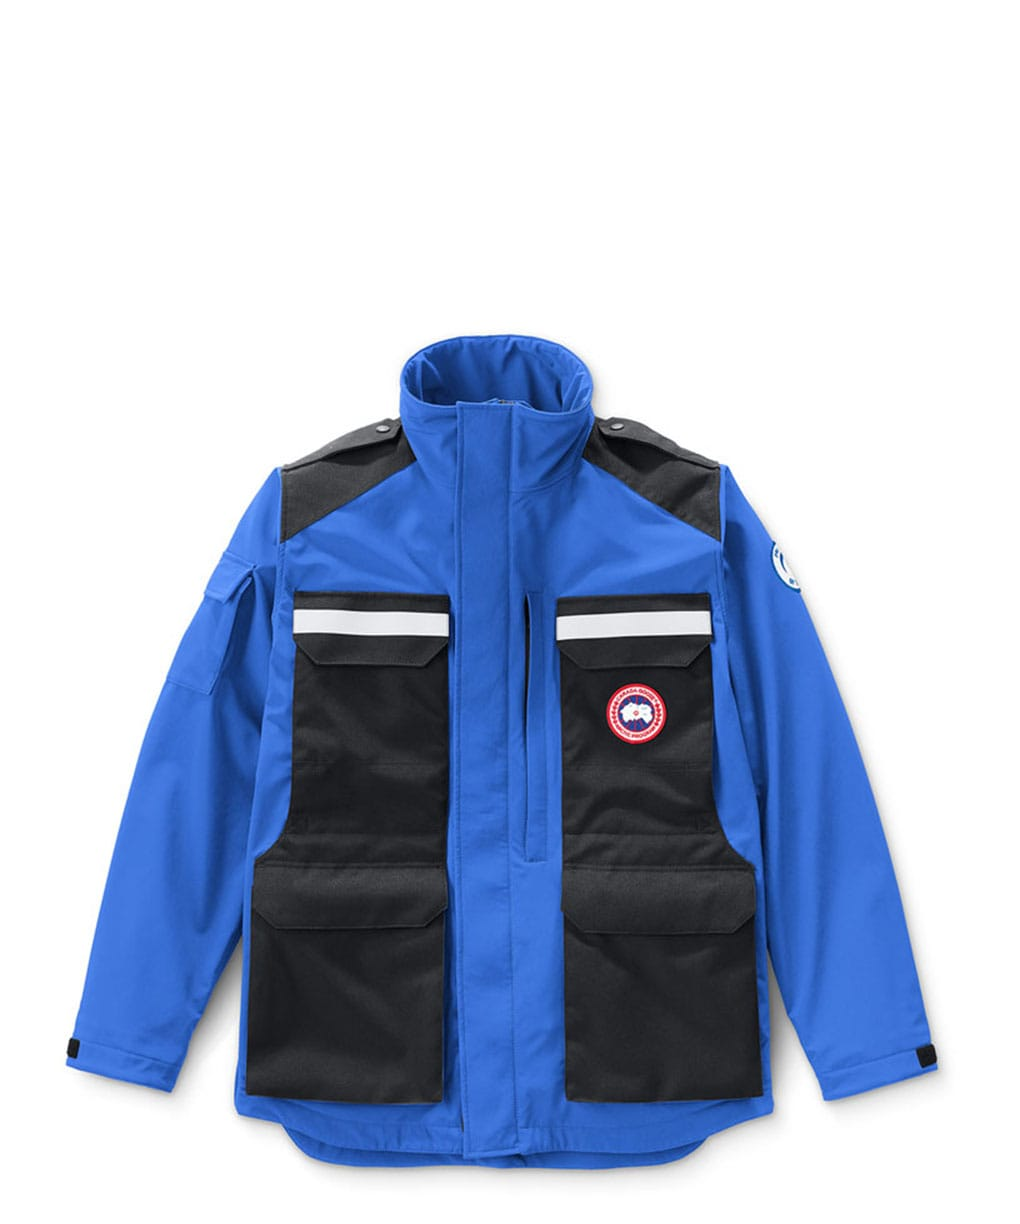 PHOTOJOURNALIST JACKET PBI